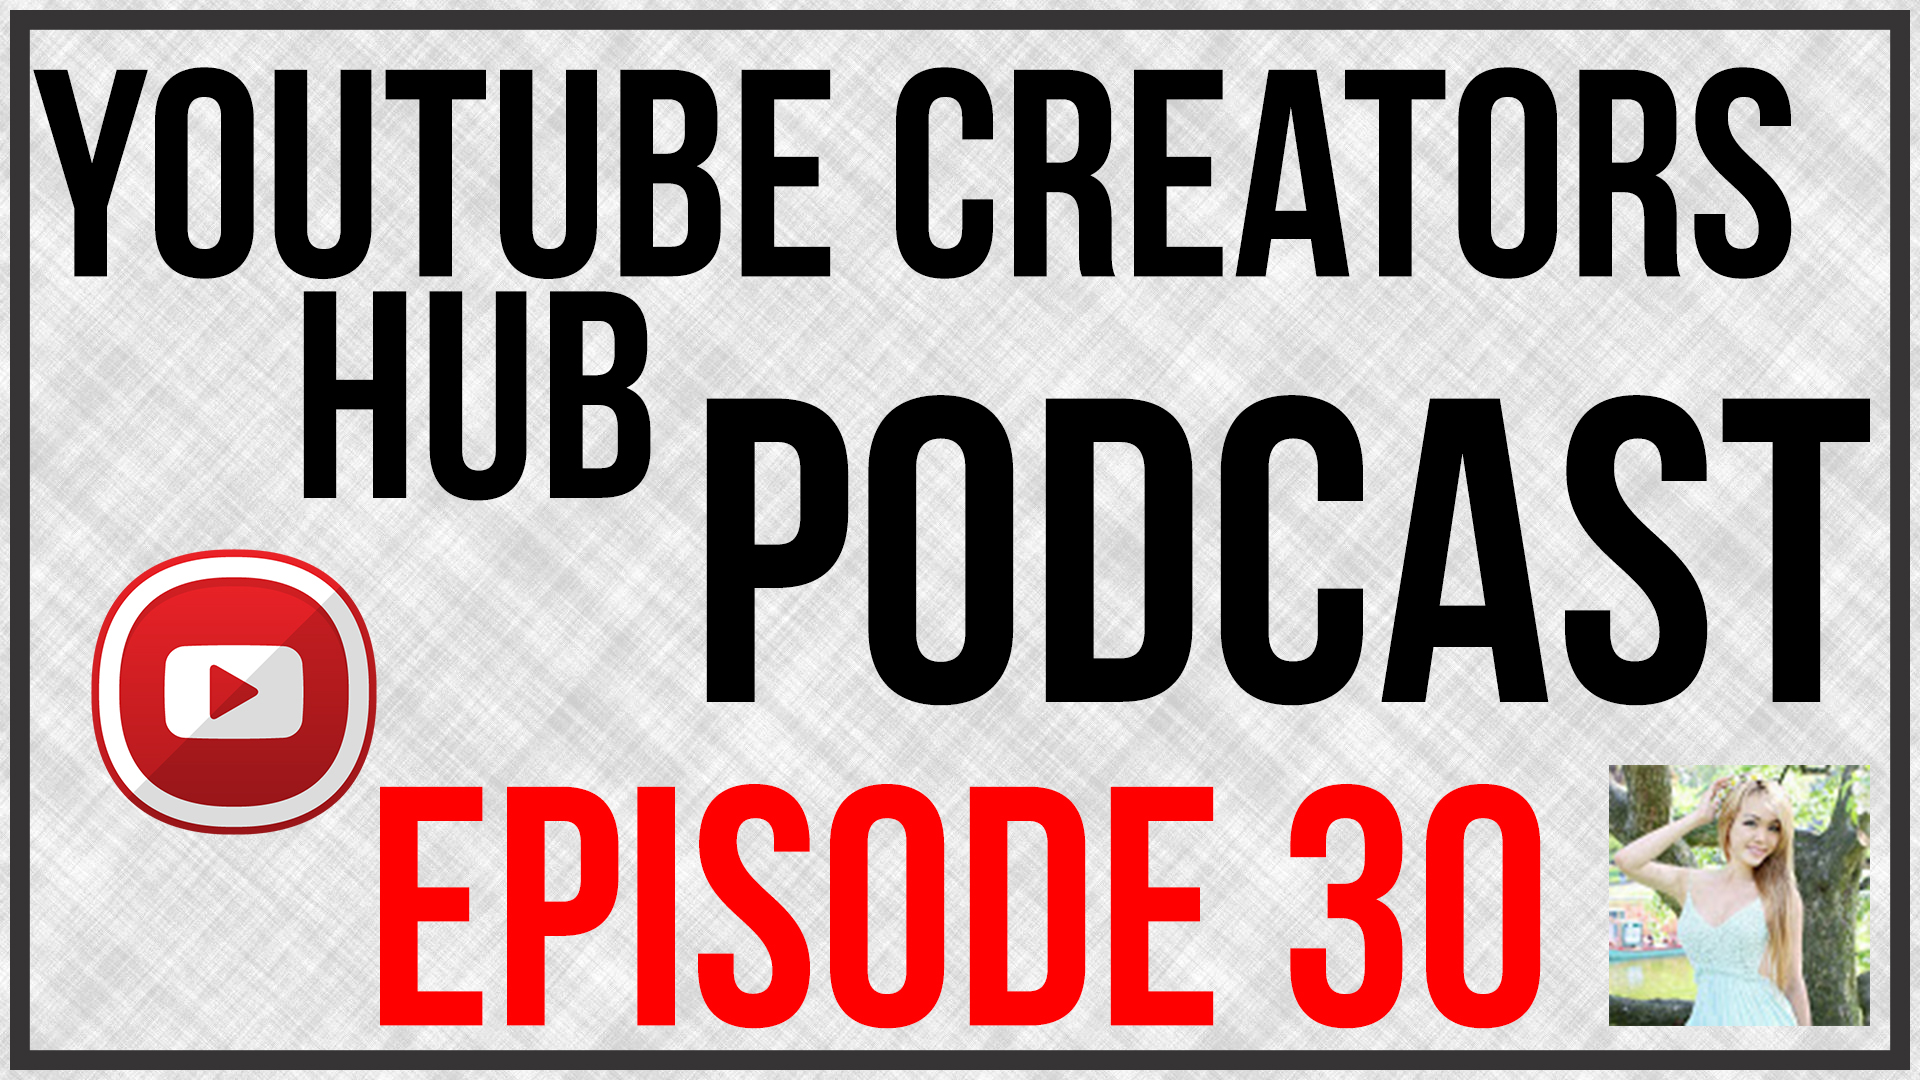 YouTube Creators Hub Episode 32